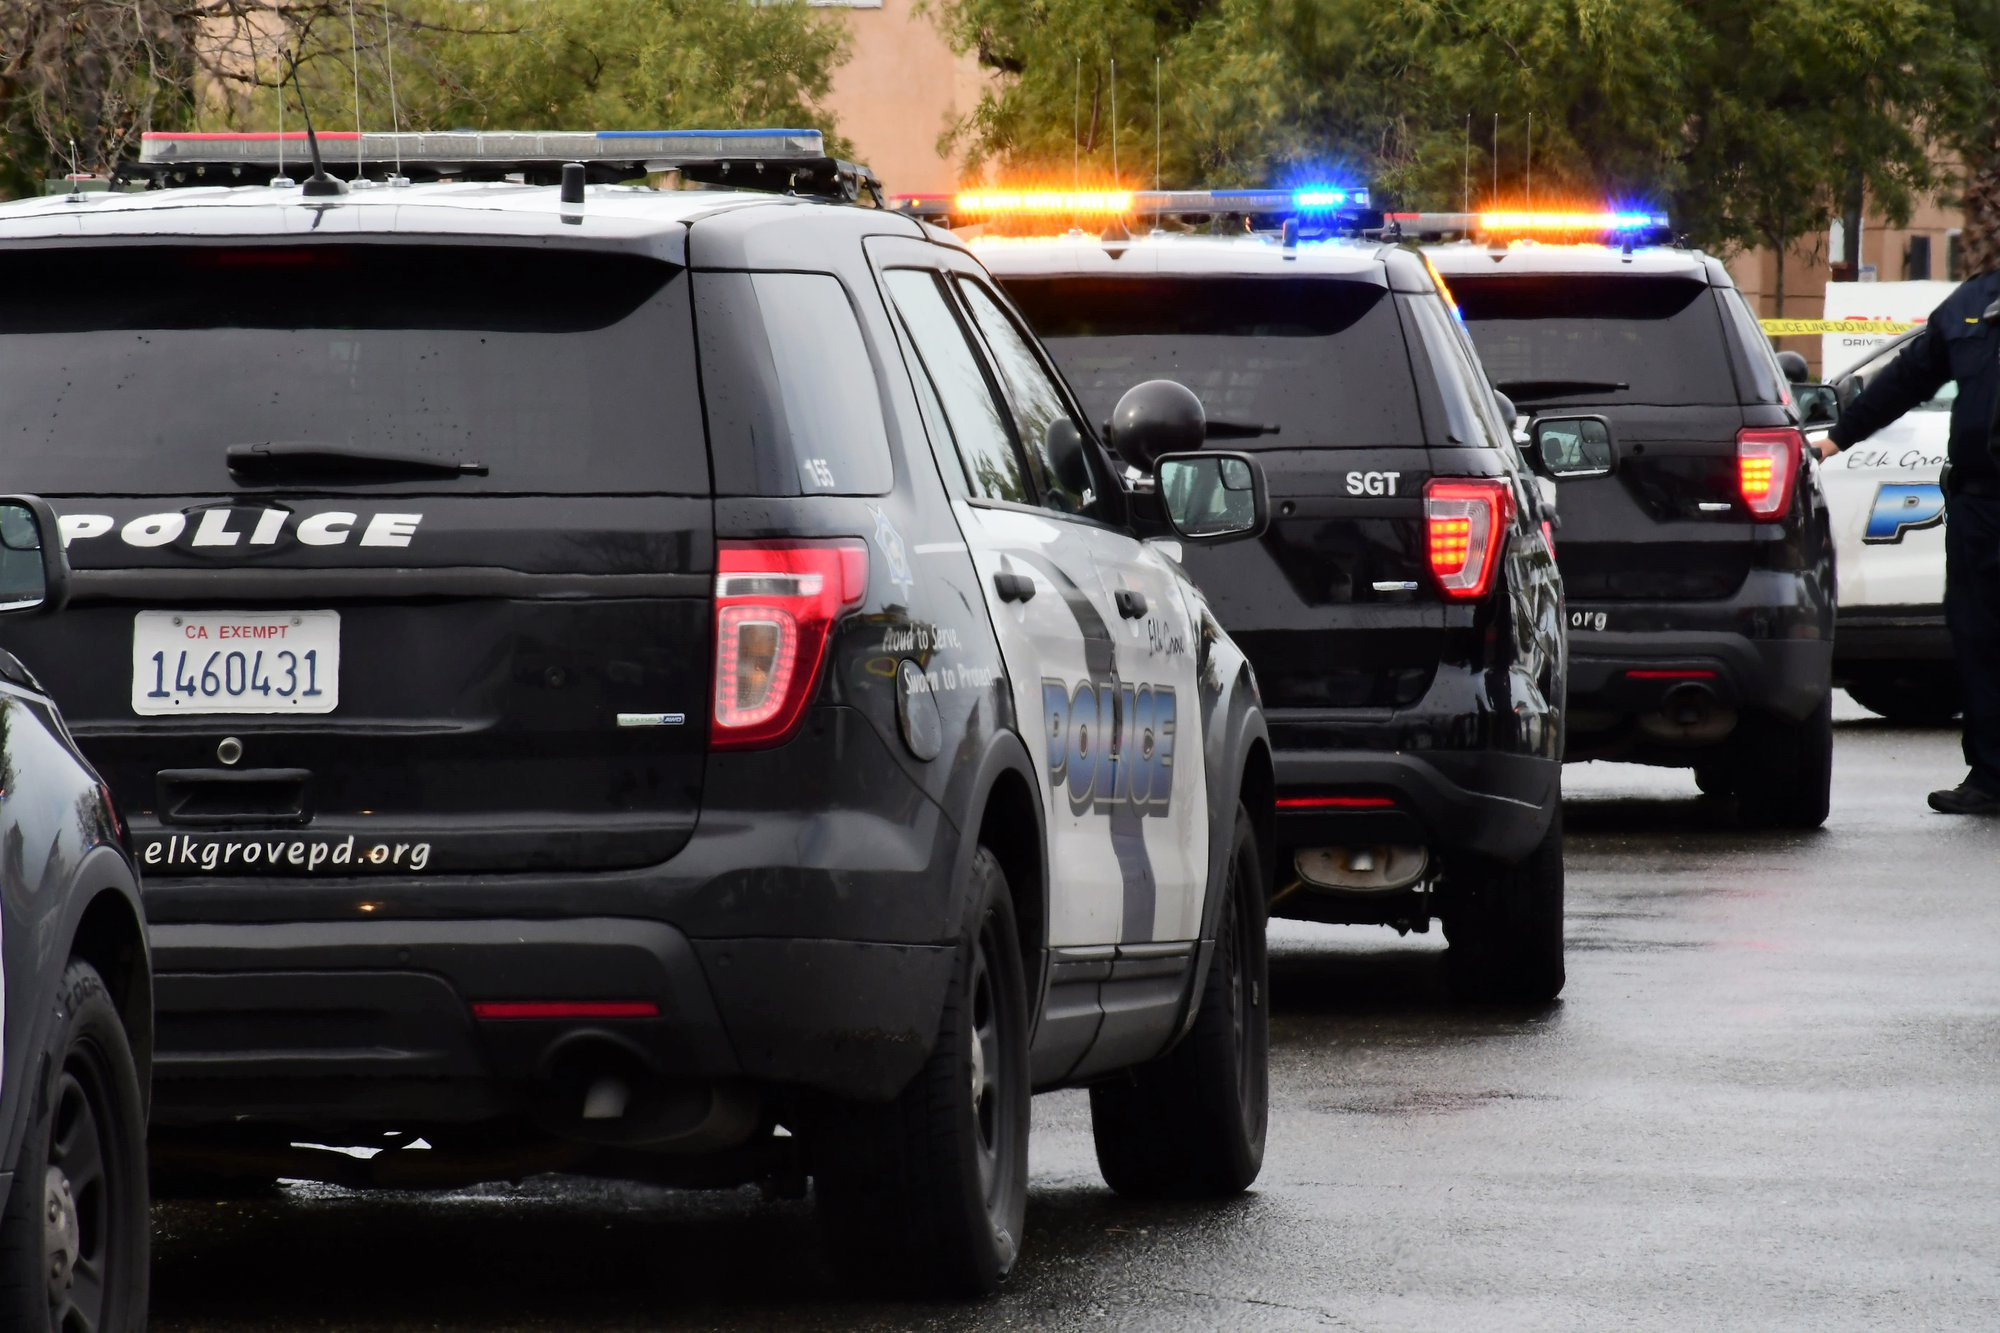 VIDEO: Officer Involved Shooting, Elk Grove Police Department